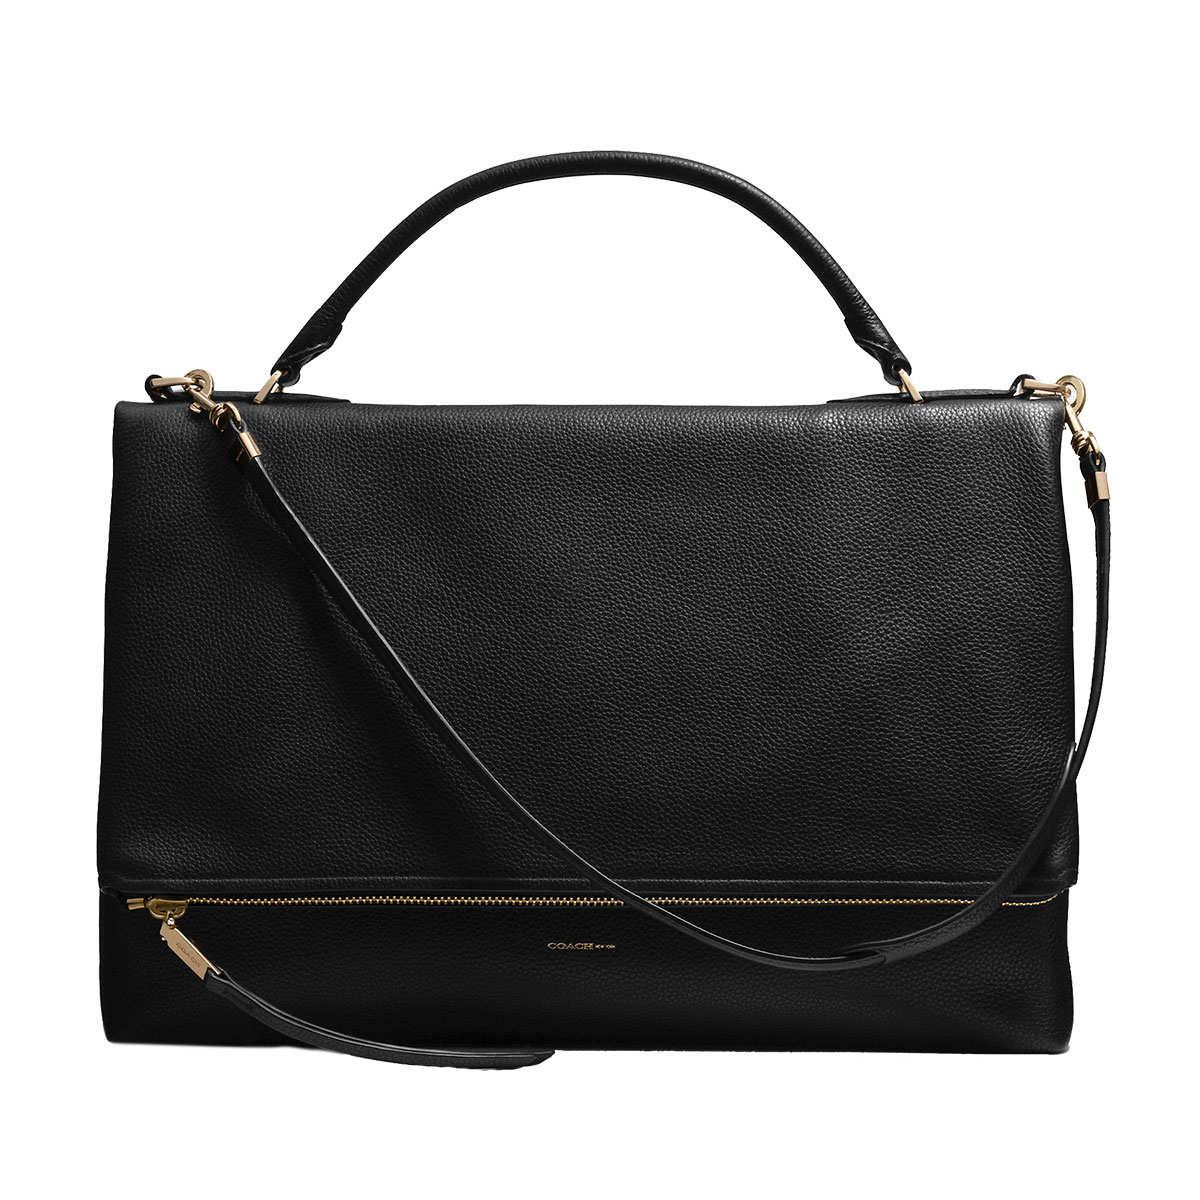 A day-to-night bag is necessary for a solid wardrobe: http://t.co/585ErfGQNU http://t.co/vlHQlmlXtg